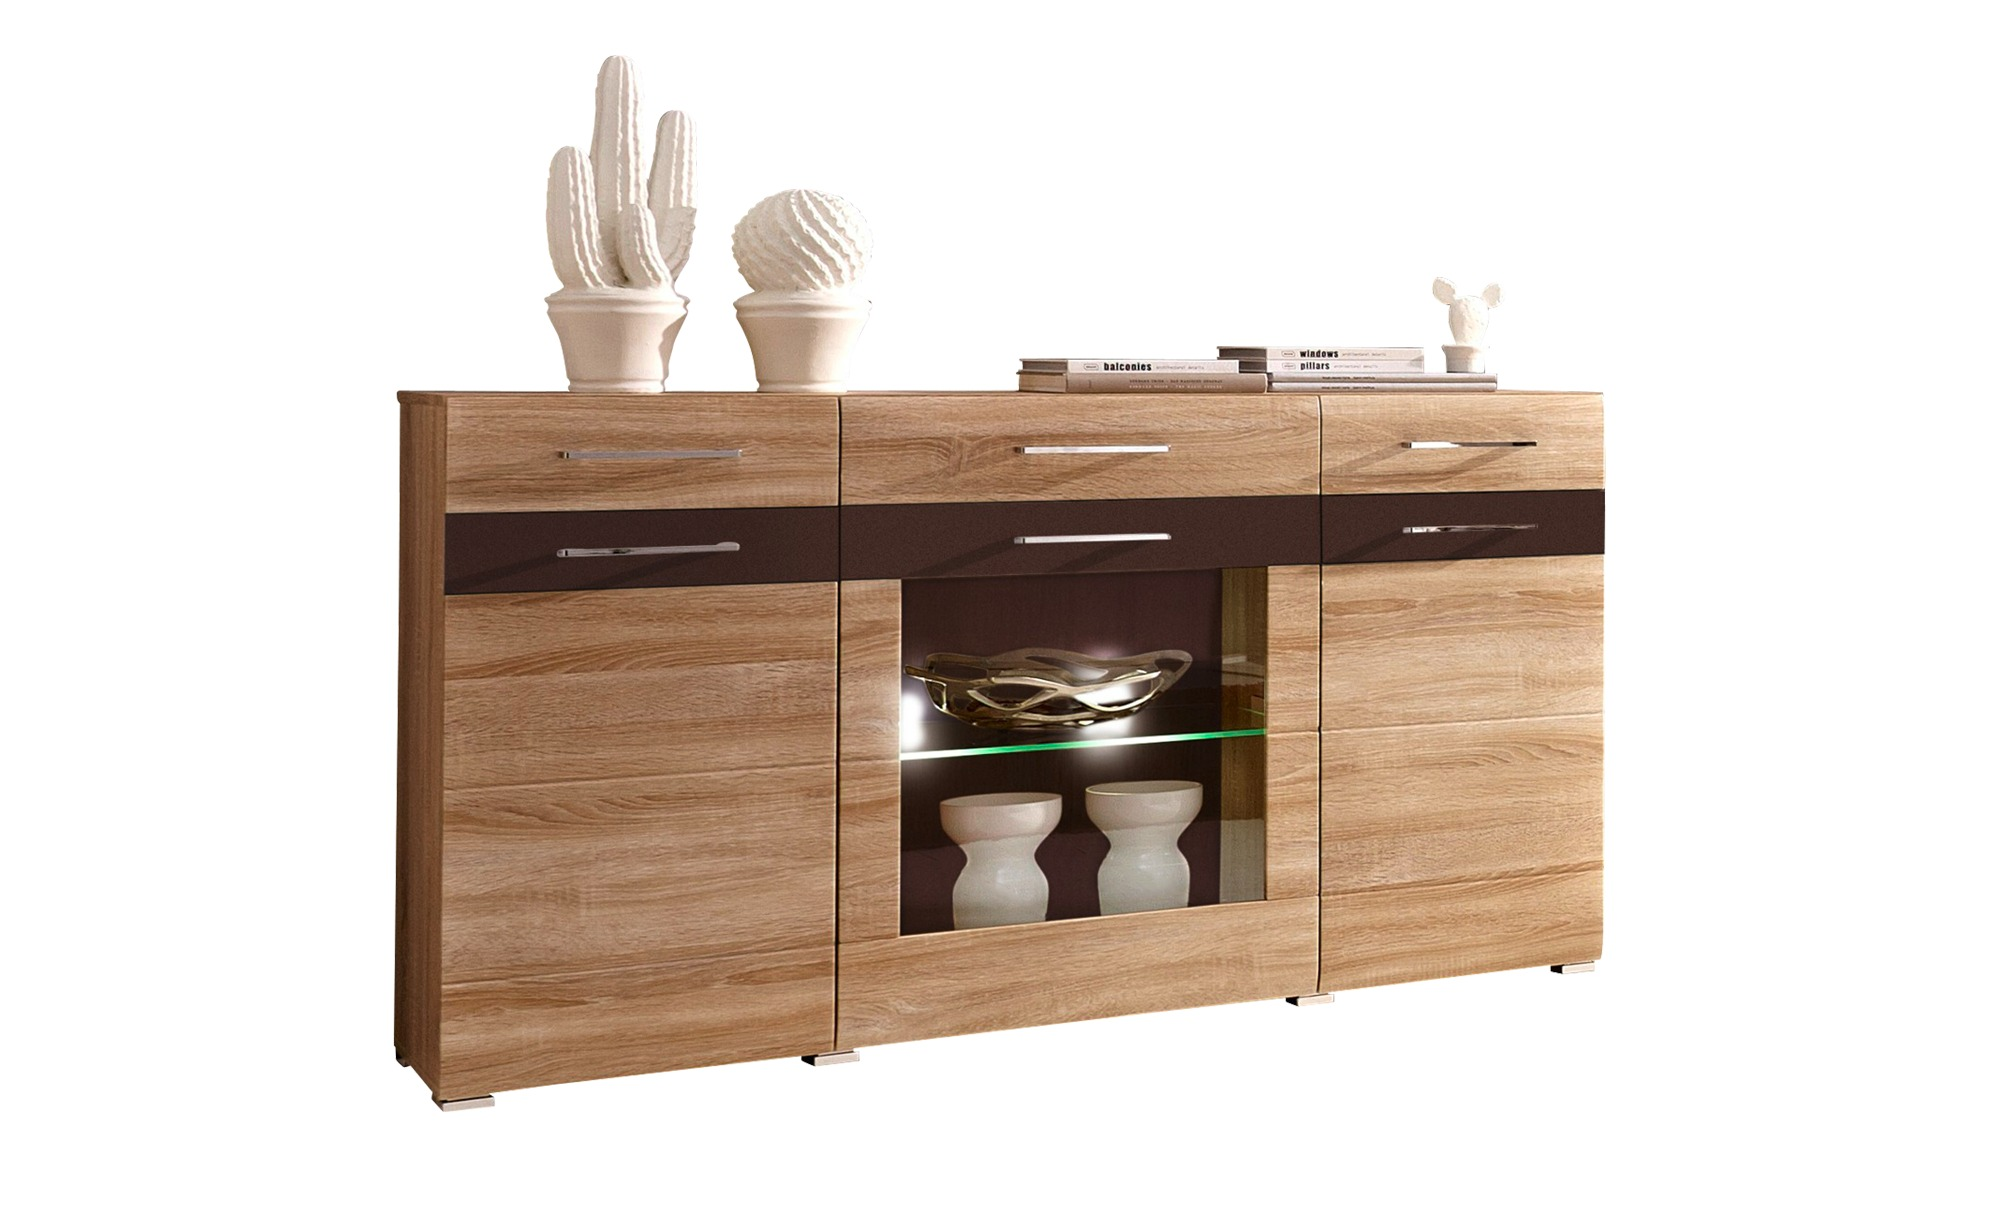 sideboard next breite 155 cm h he 91 cm holzfarben online kaufen bei woonio. Black Bedroom Furniture Sets. Home Design Ideas